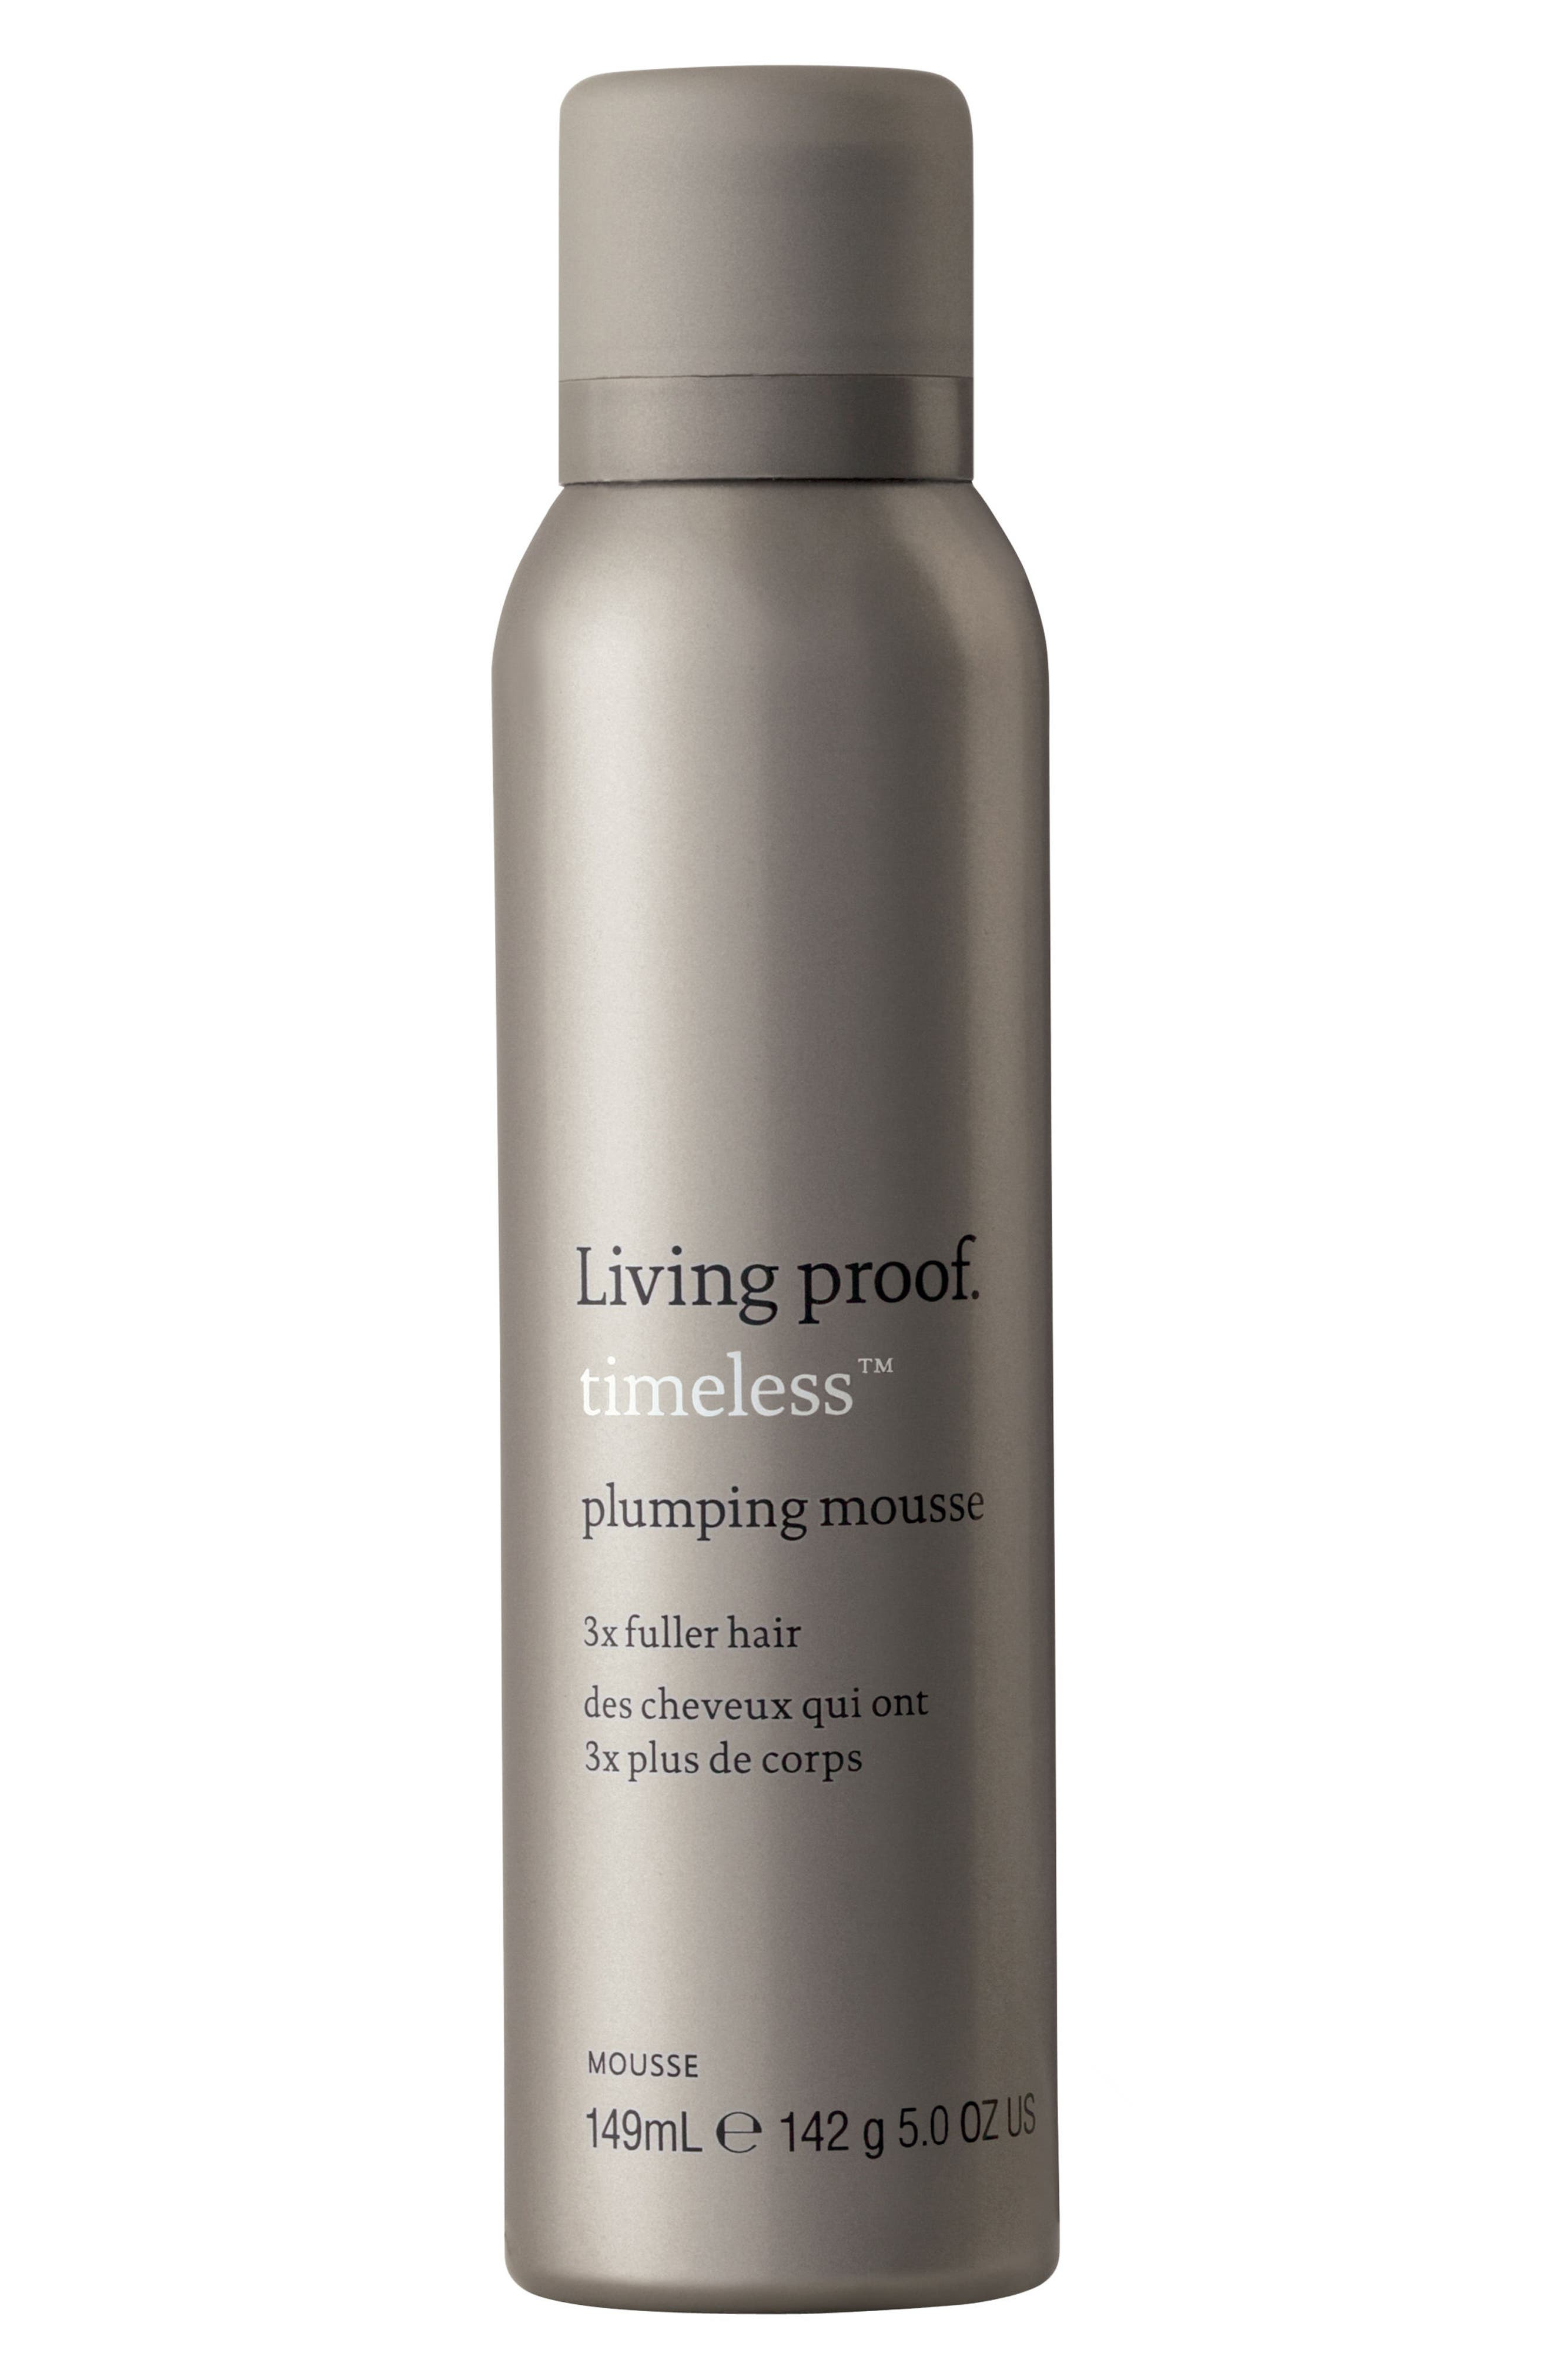 Living proof® Timeless Plumping Mousse